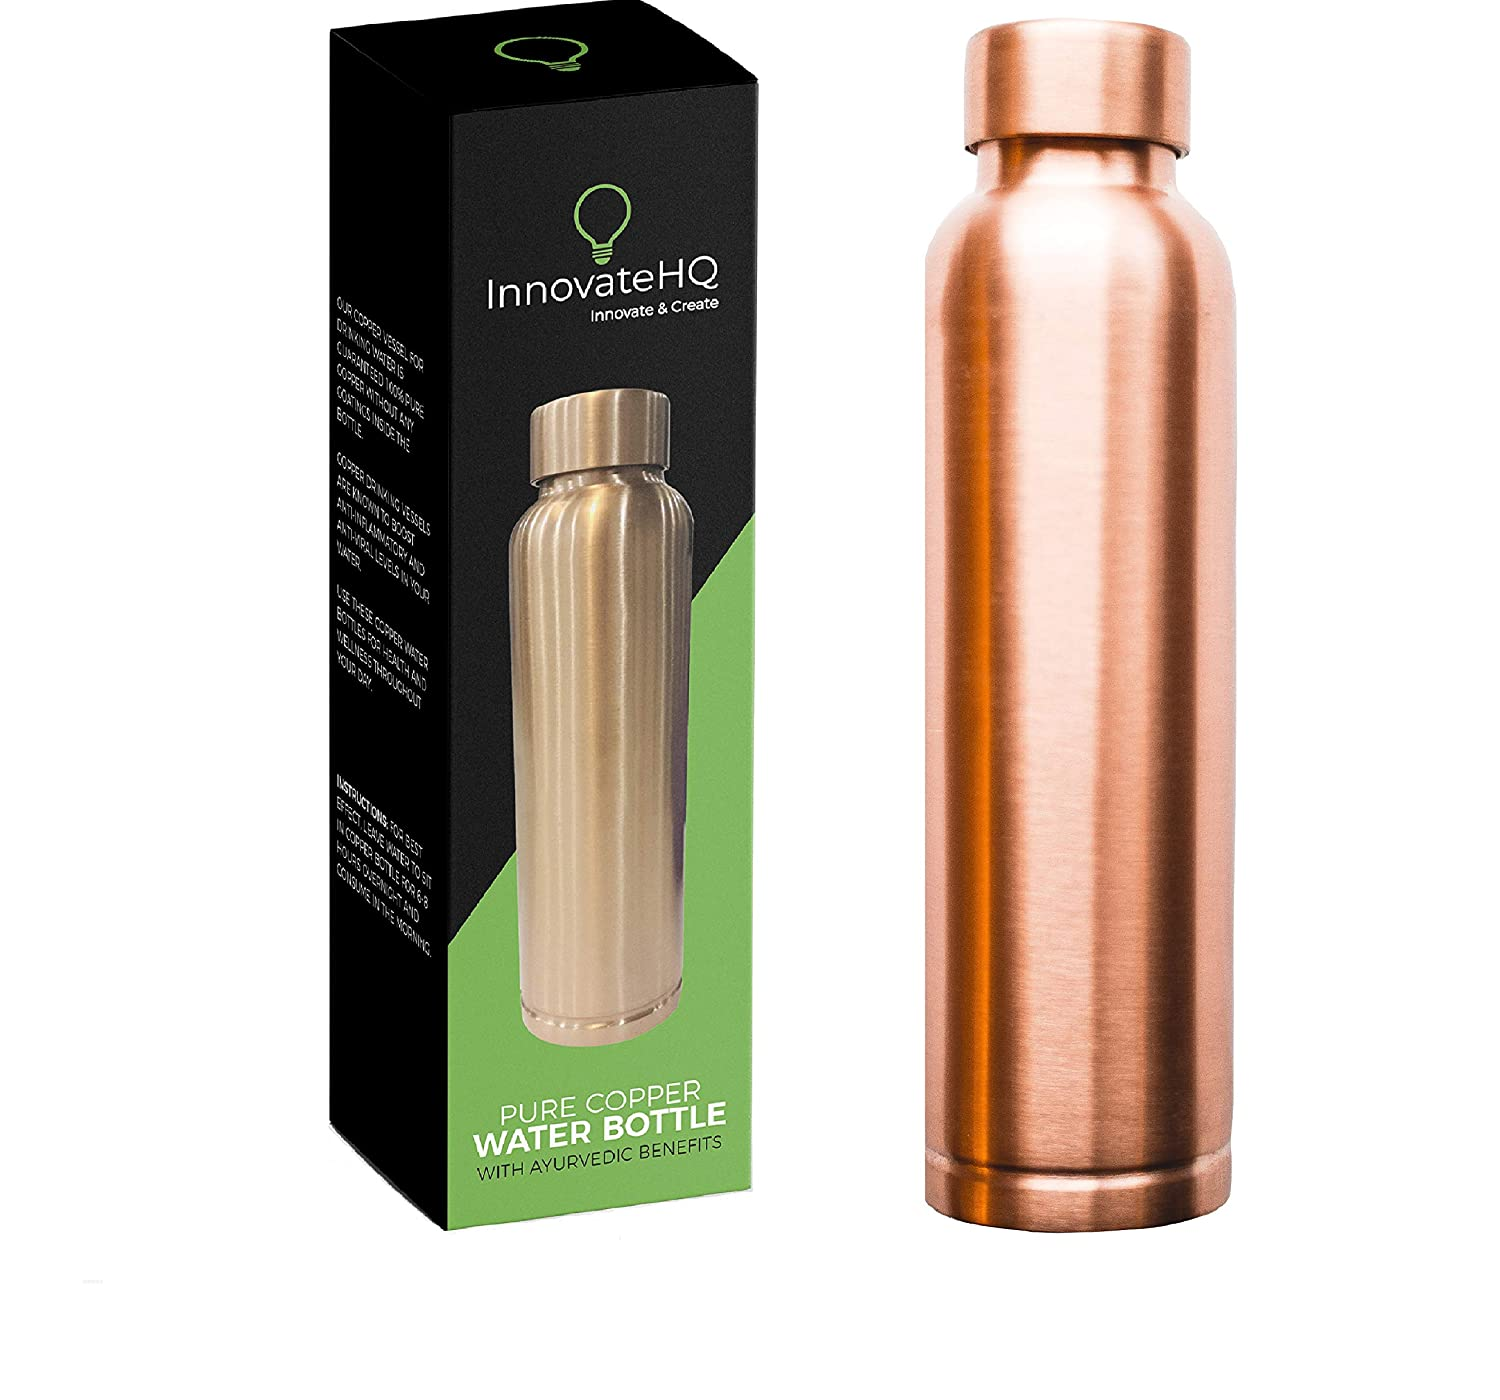 34oz Pure Copper Drinking Vessel Anti-Bacterial Copper Bottle Helps for Clear Skin Anti-Oxidant Limited Squeaking from Cap InnovateHQ Copper Water Bottle Ayurvedic Benefits